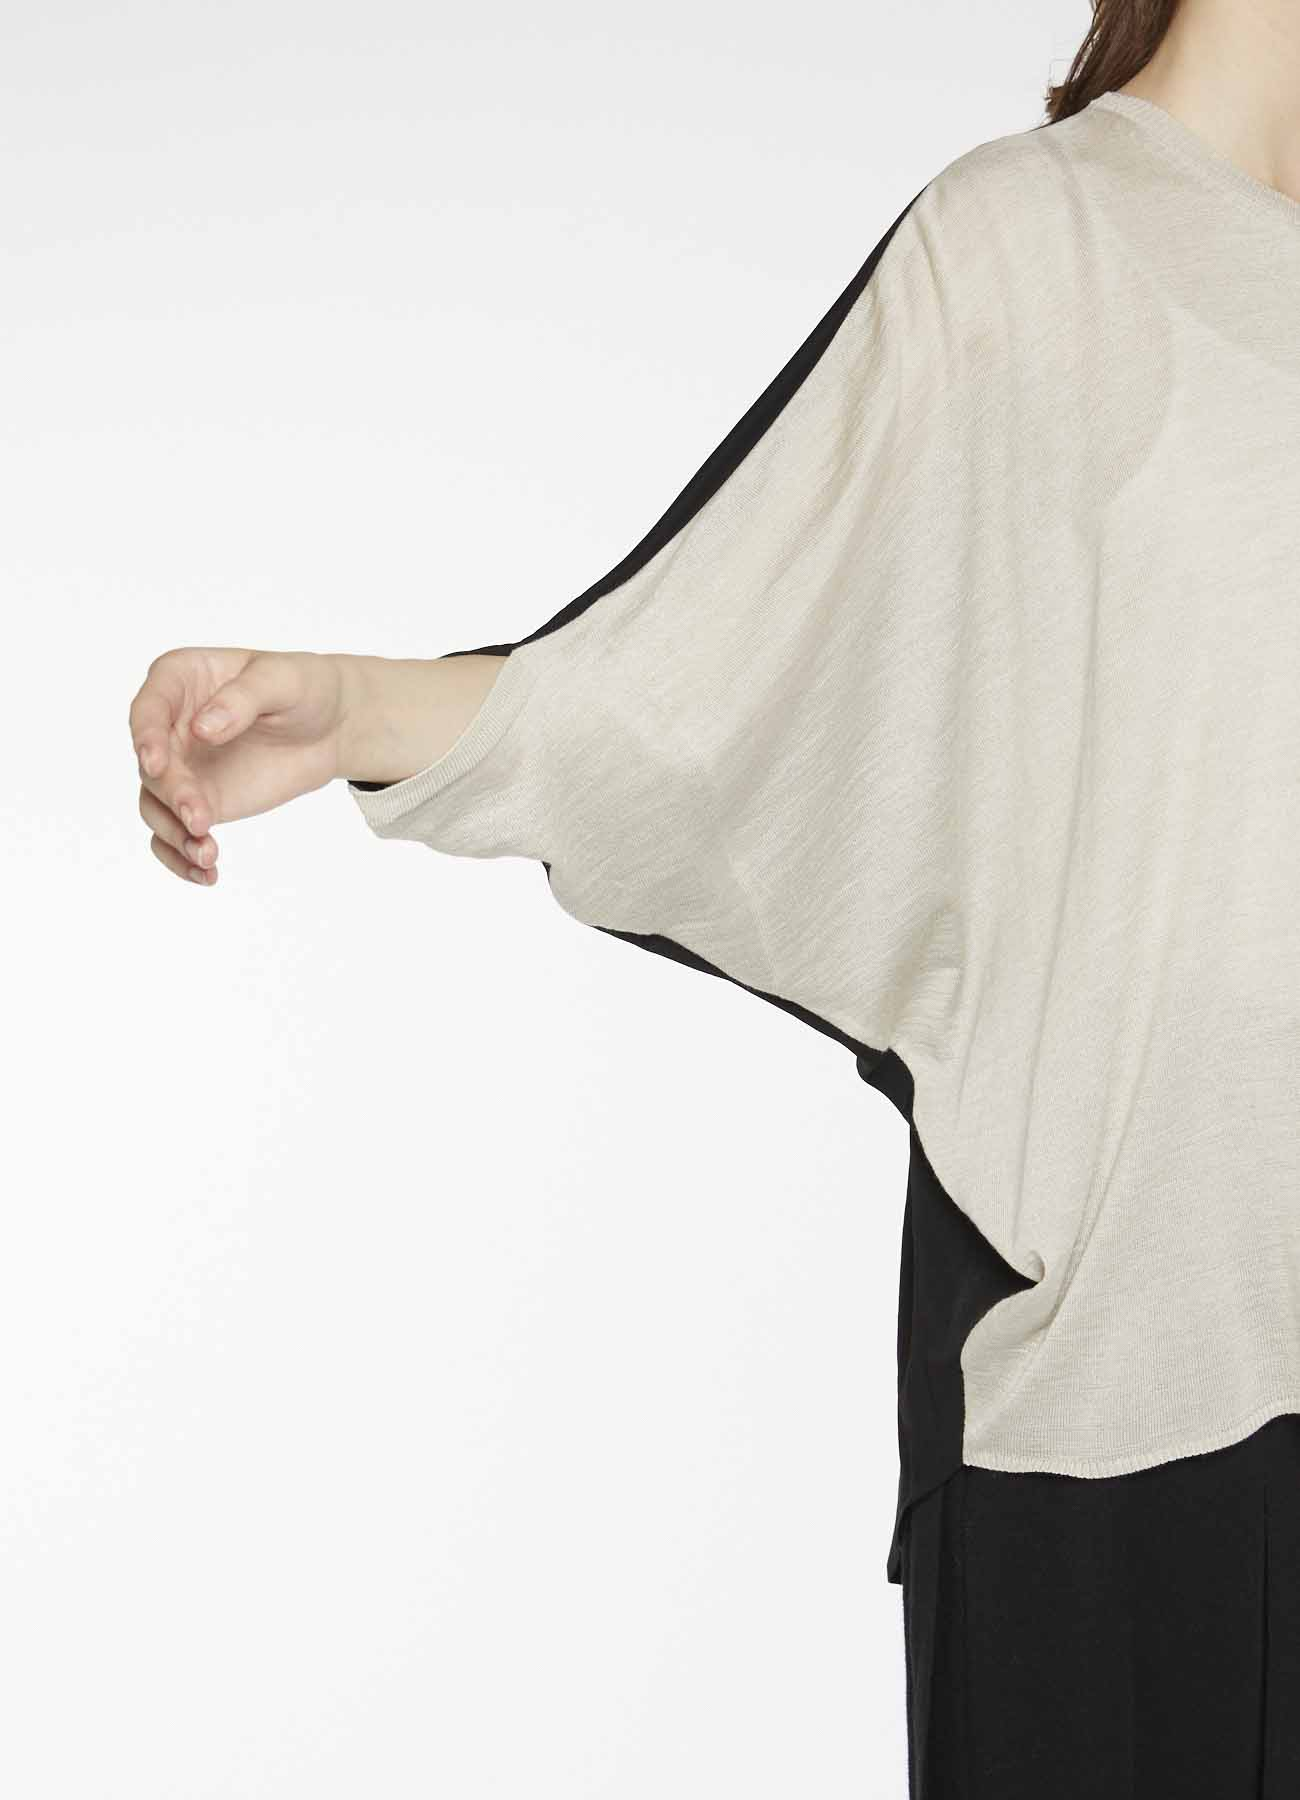 RISMATbyY's DESIGNED SLEEVE ASYMMETRICAL PULL OVER